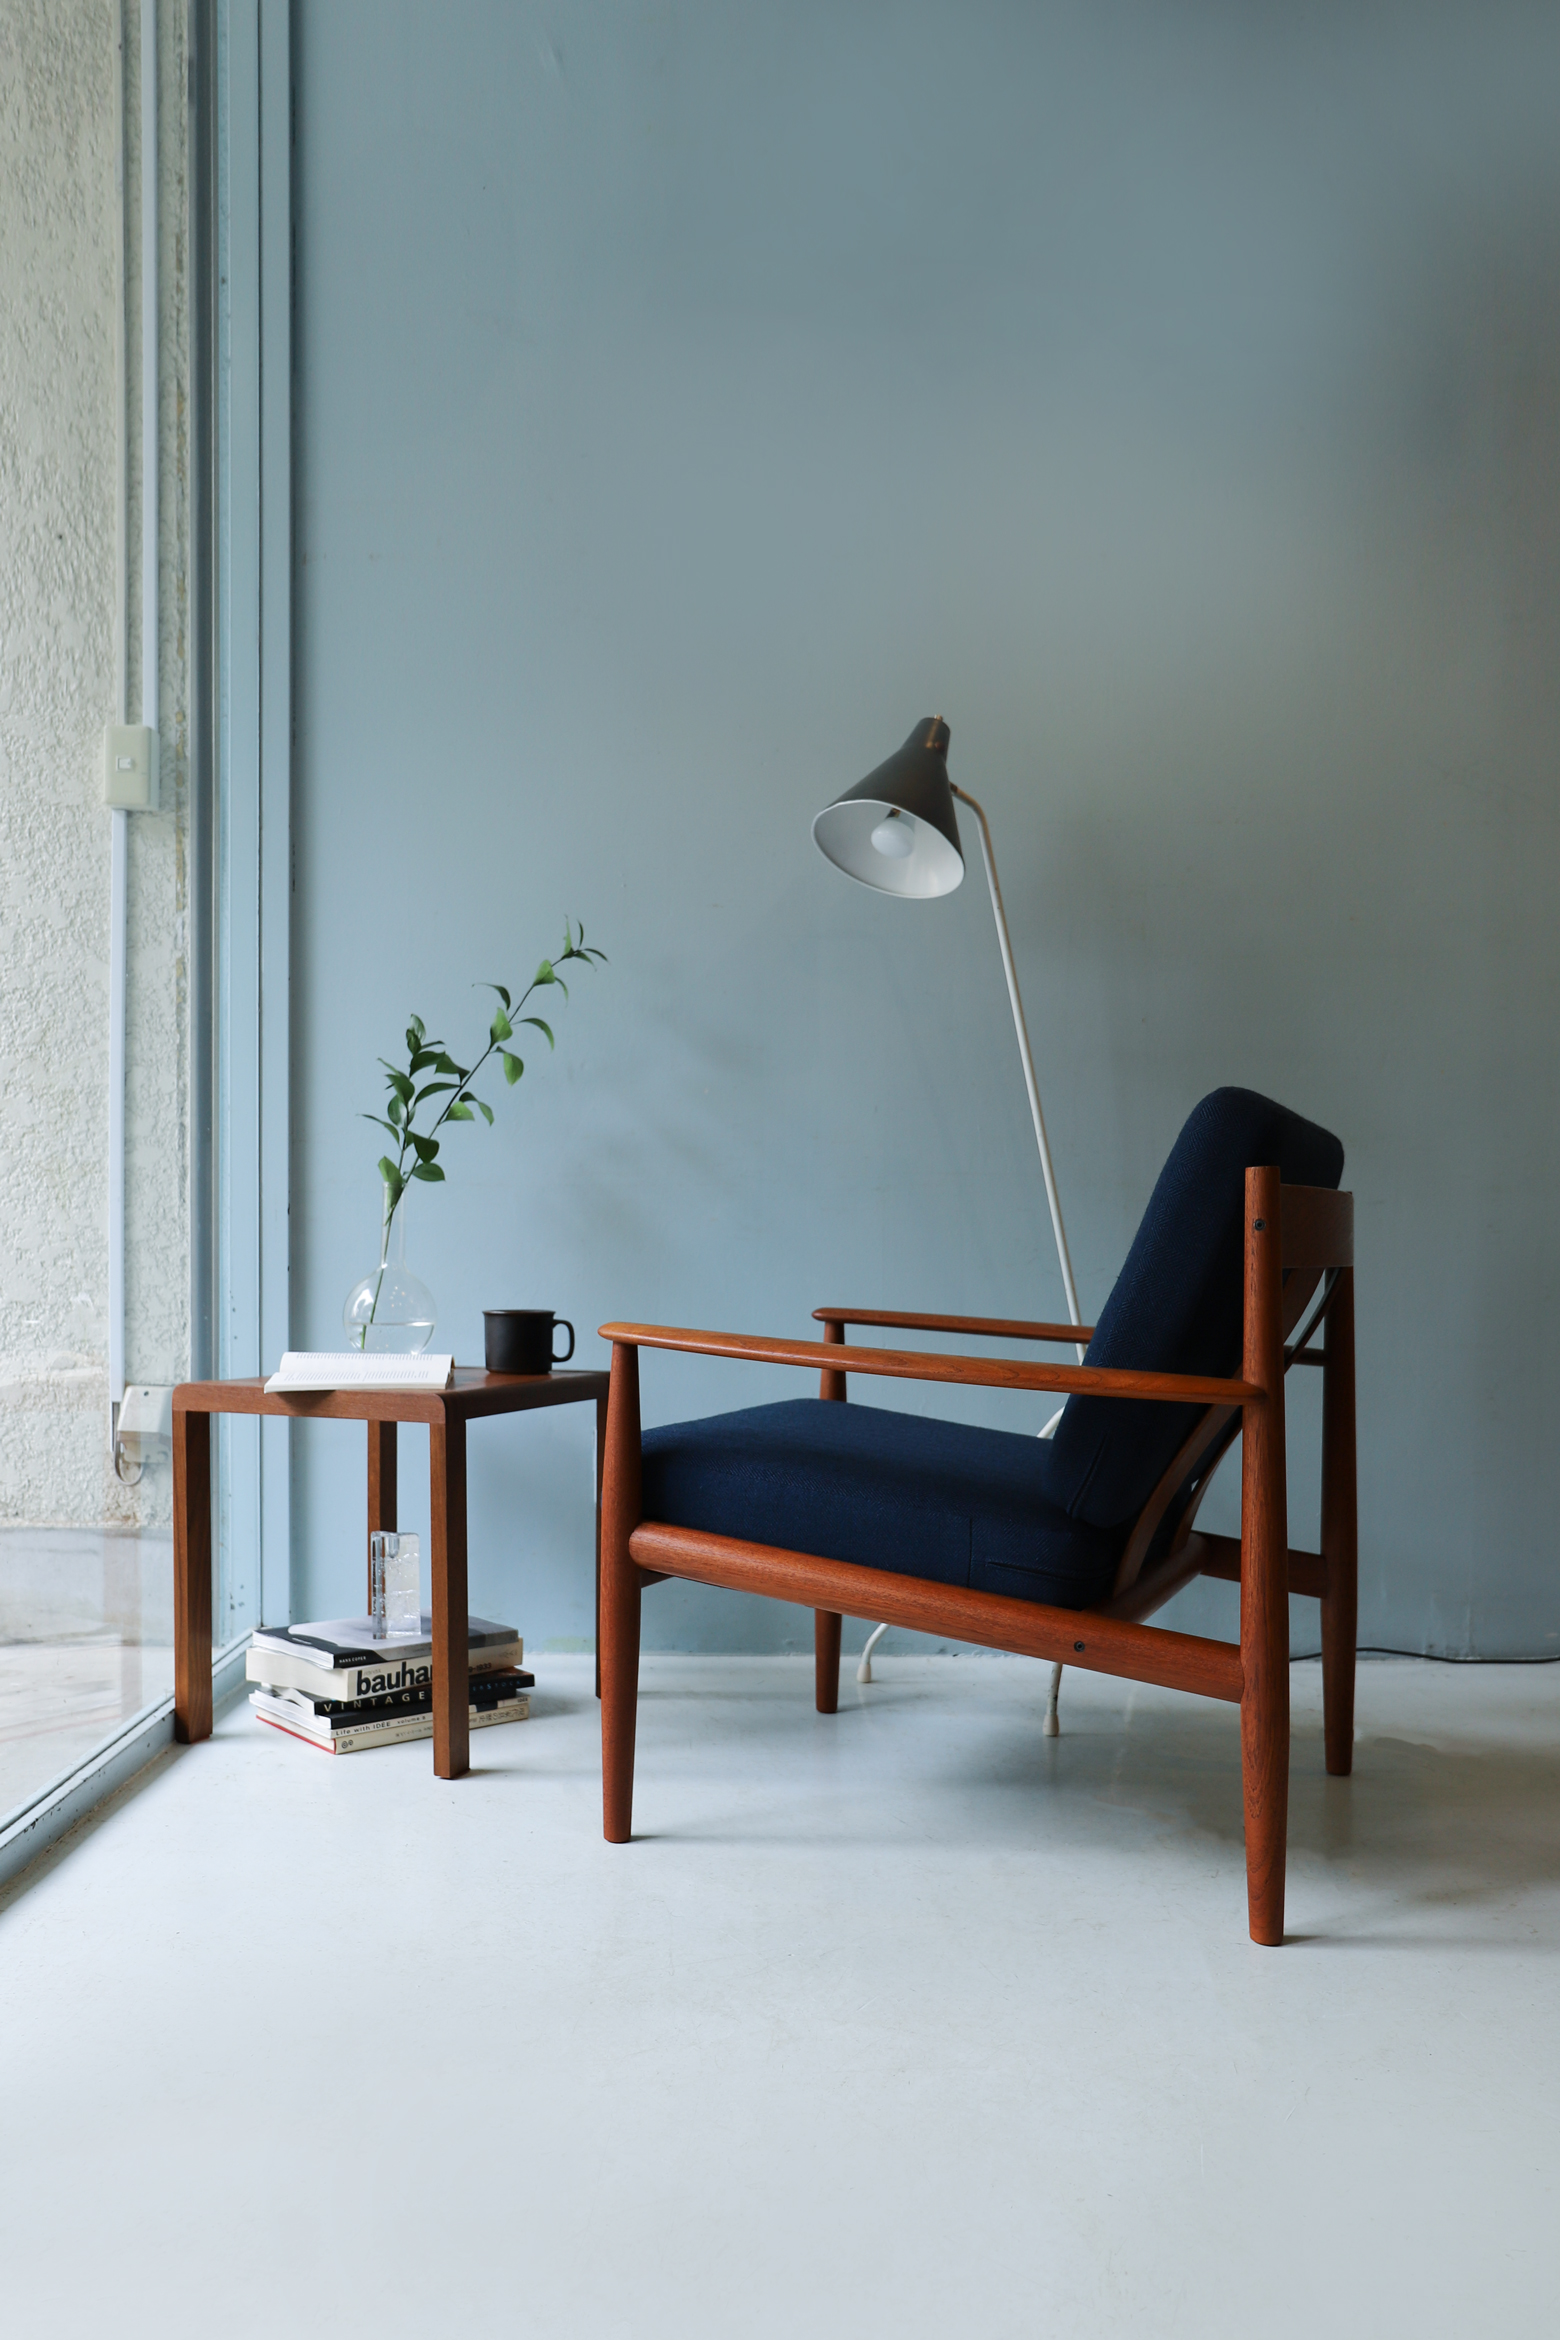 France & Søn Easy Chair Grete Jalk model 118/フランス&サン イージーチェア グレーテ・ヤルク デンマーク 北欧ヴィンテージ 1Pソファ